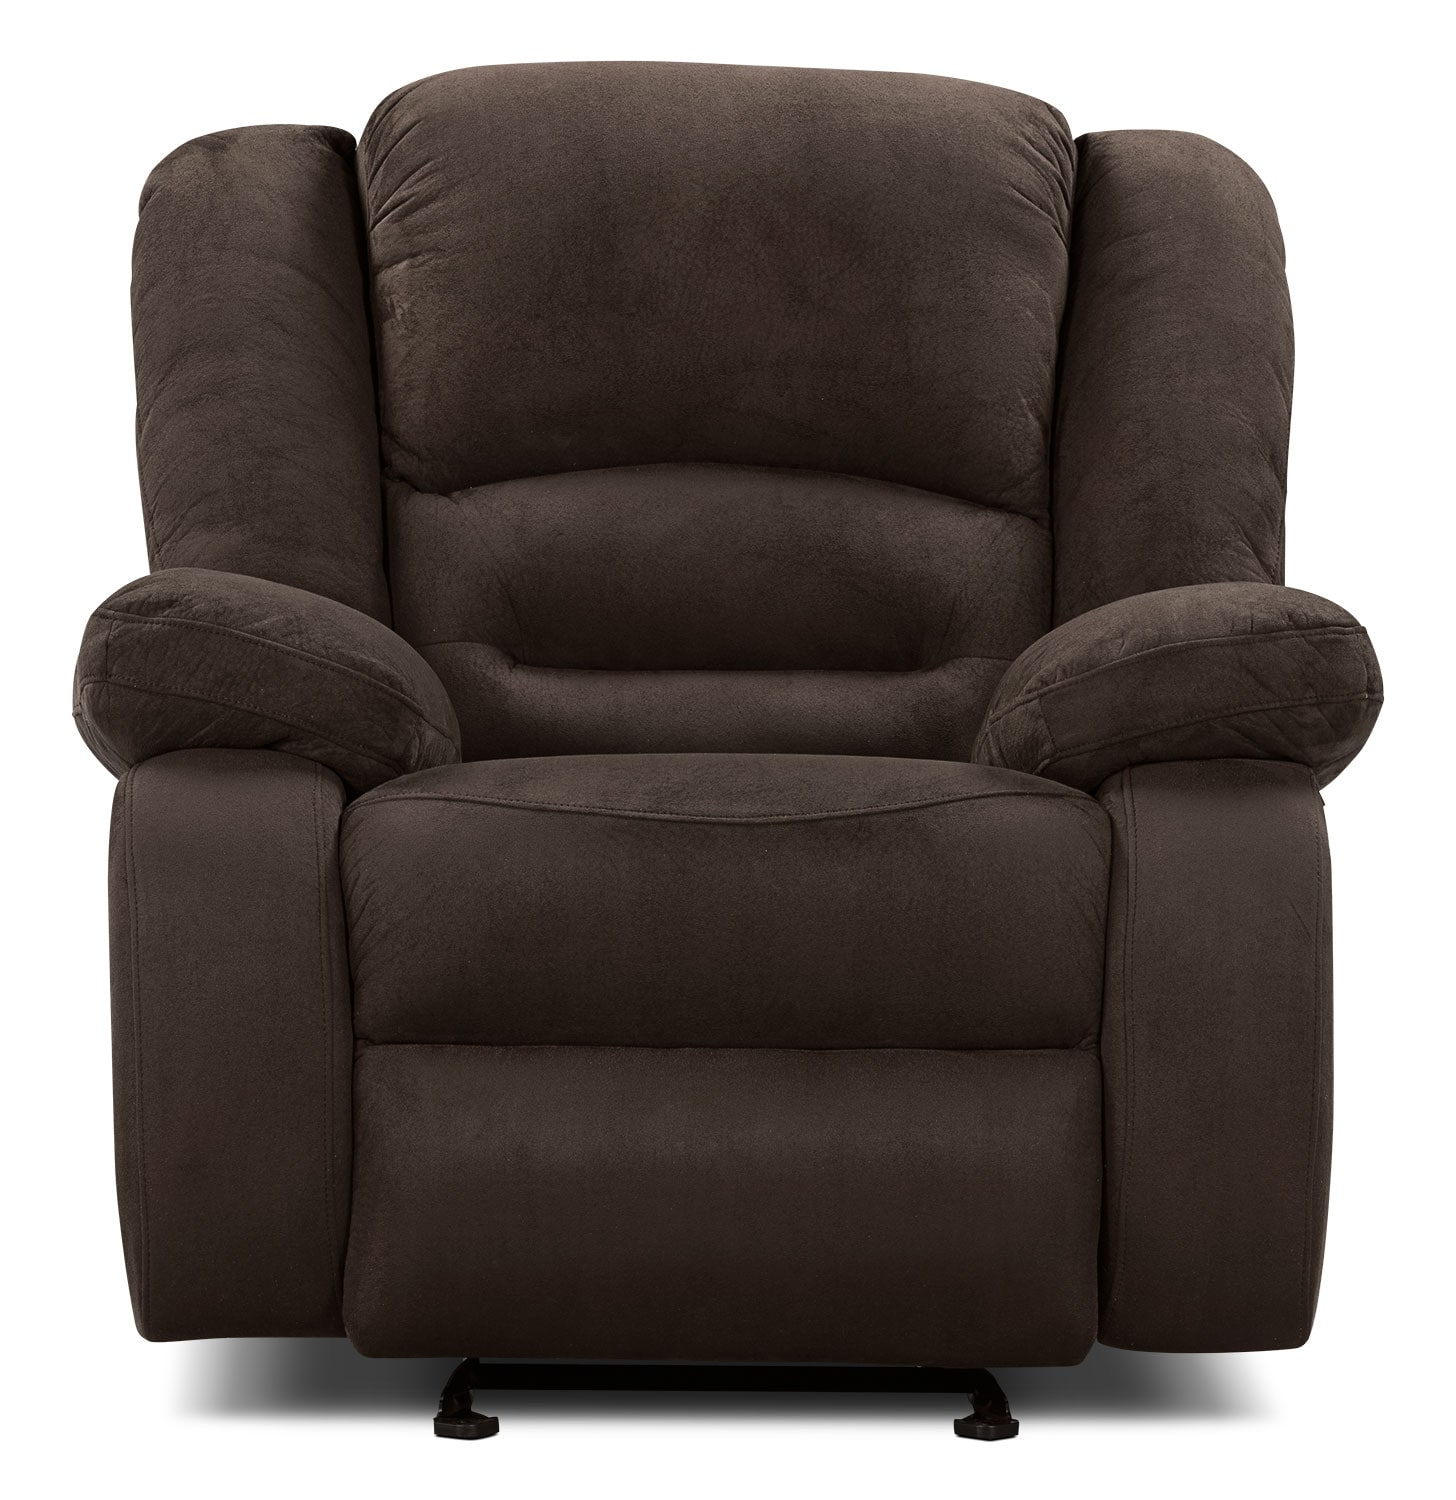 Toreno Cocoa Padded Microsuede Reclining Glider Chair